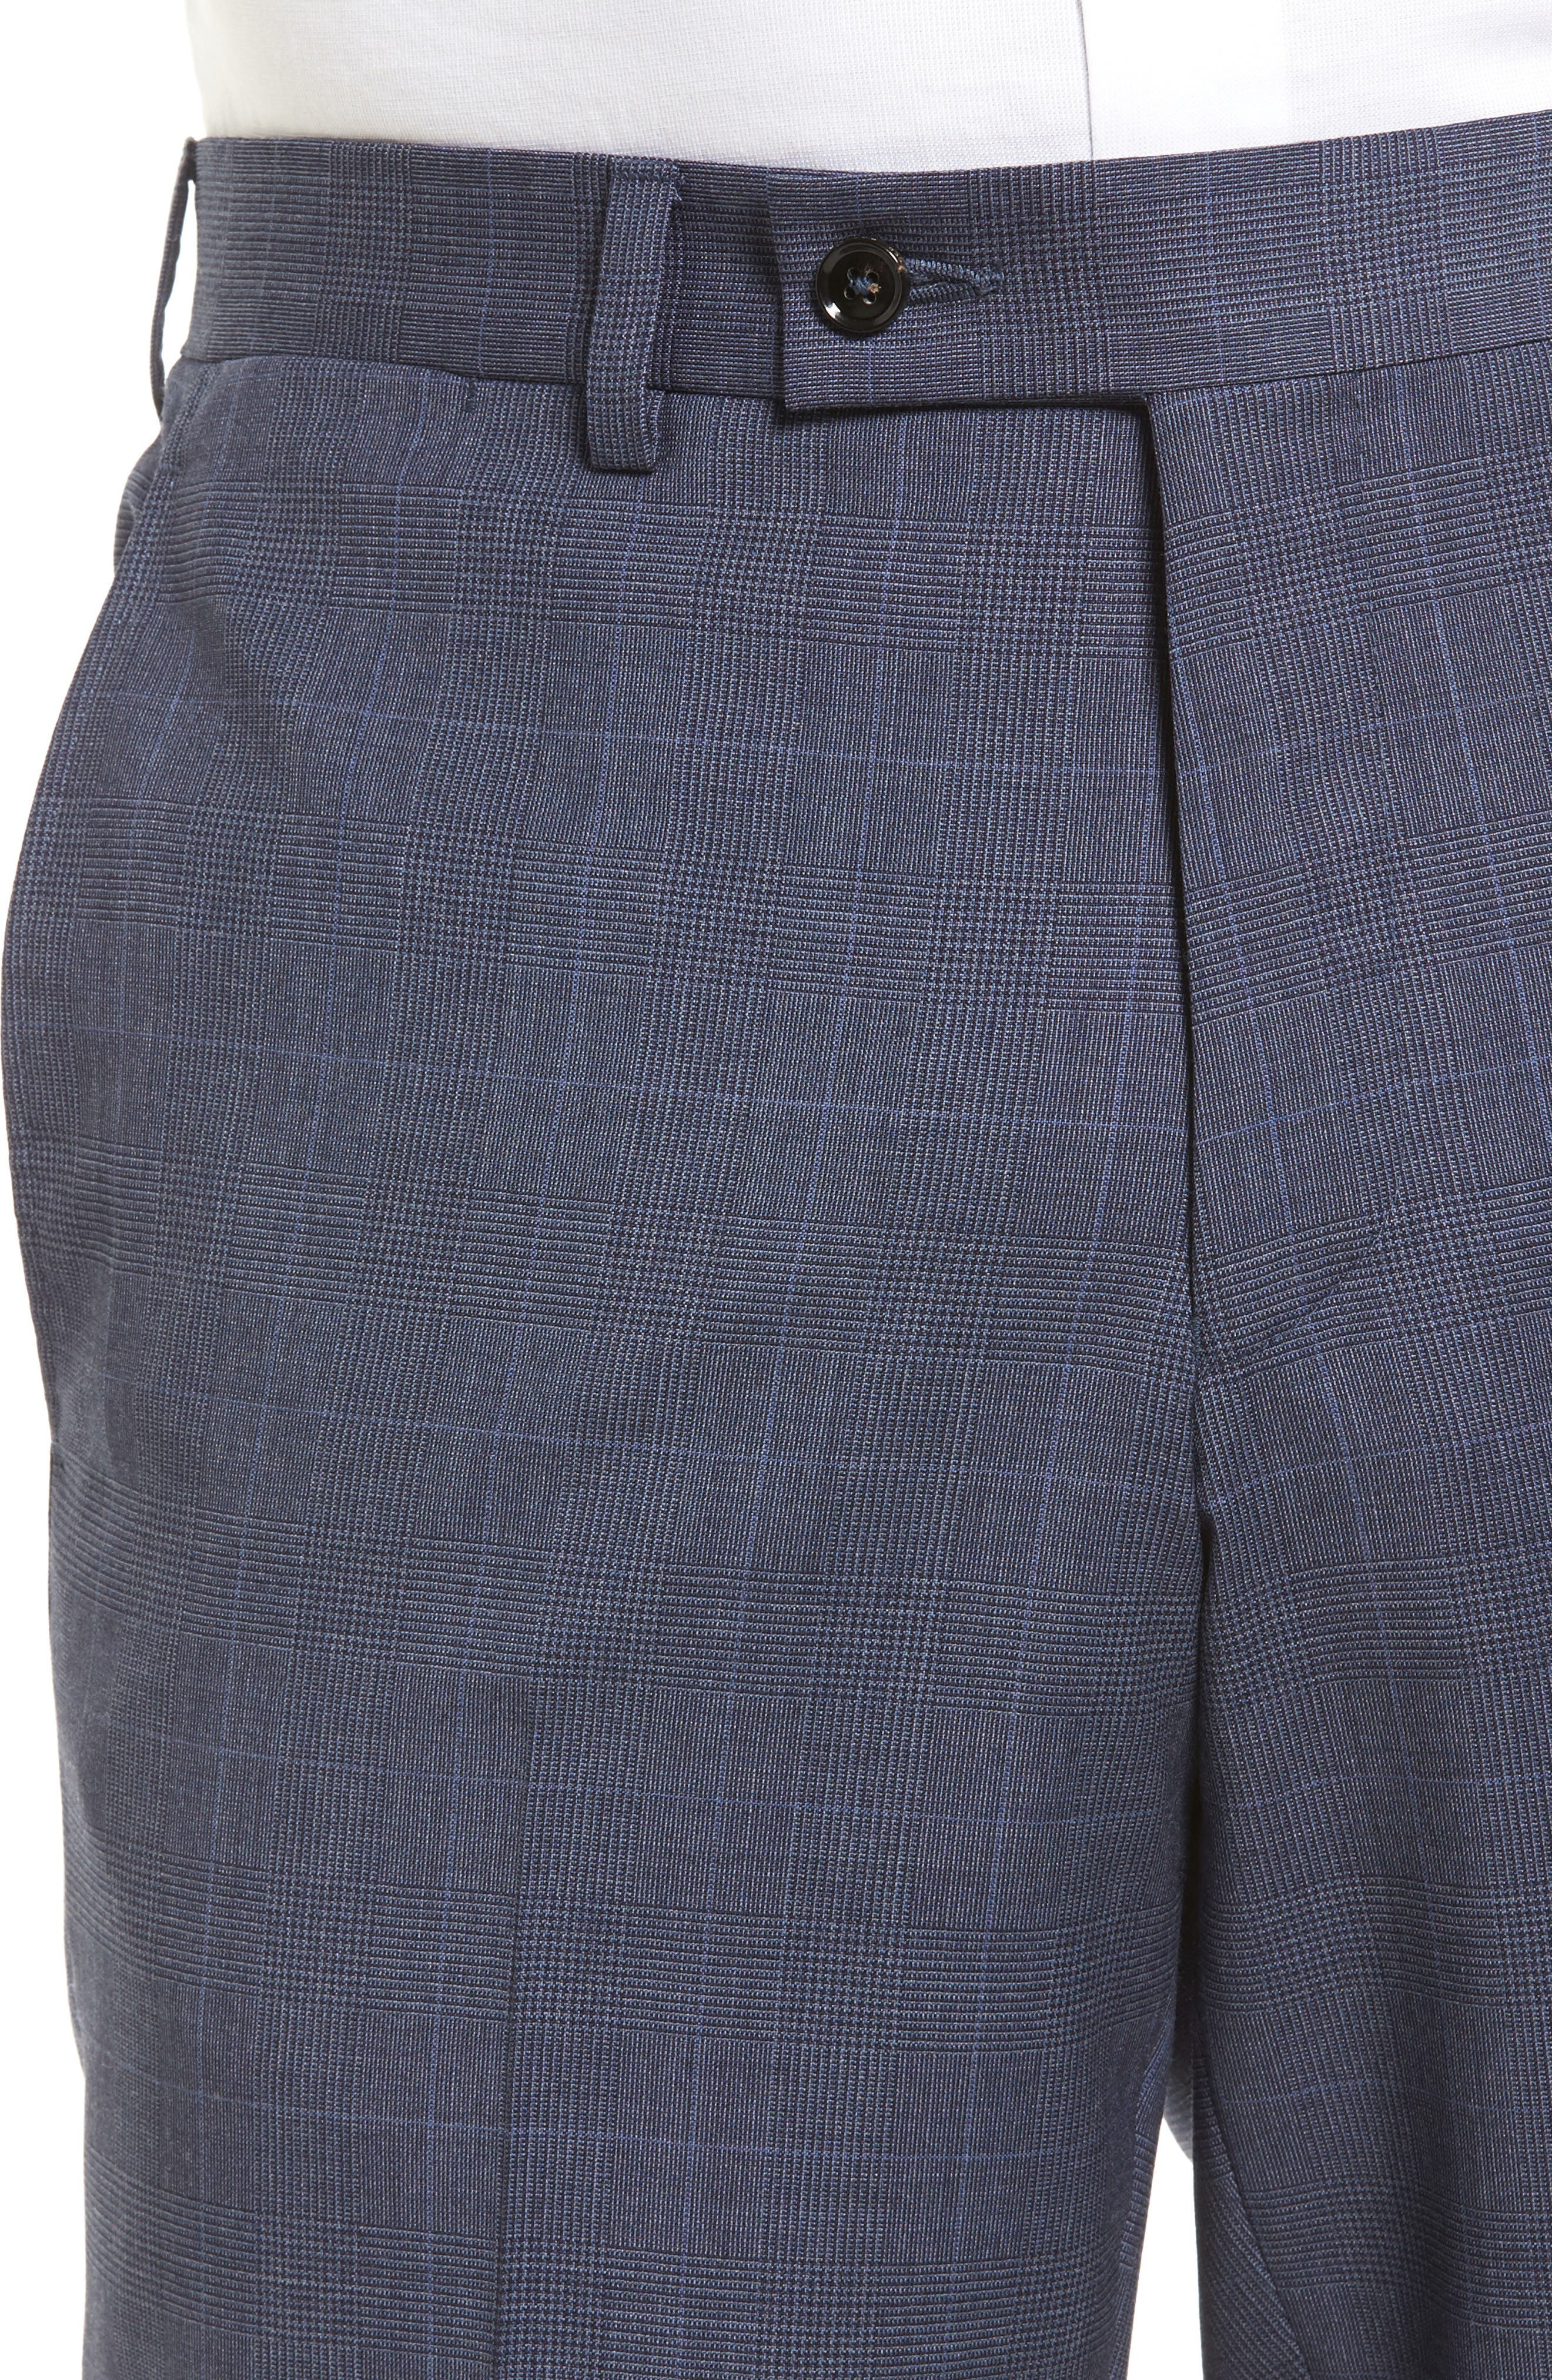 Jefferson Flat Front Wool Trousers,                             Alternate thumbnail 4, color,                             400